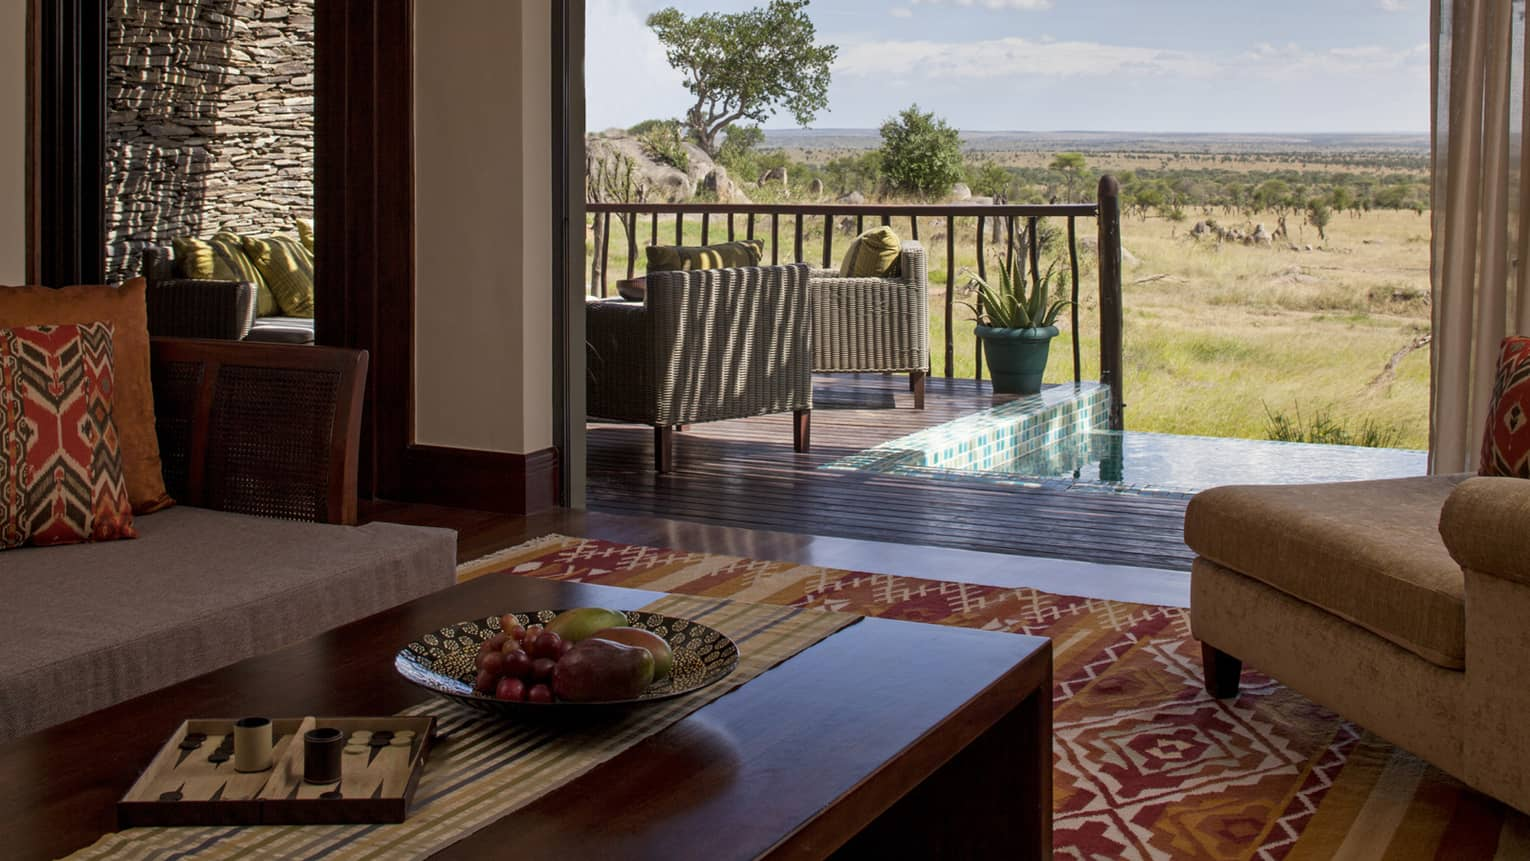 A suite decorated with earth toned couches and a rug look out onto an out at the watering hole